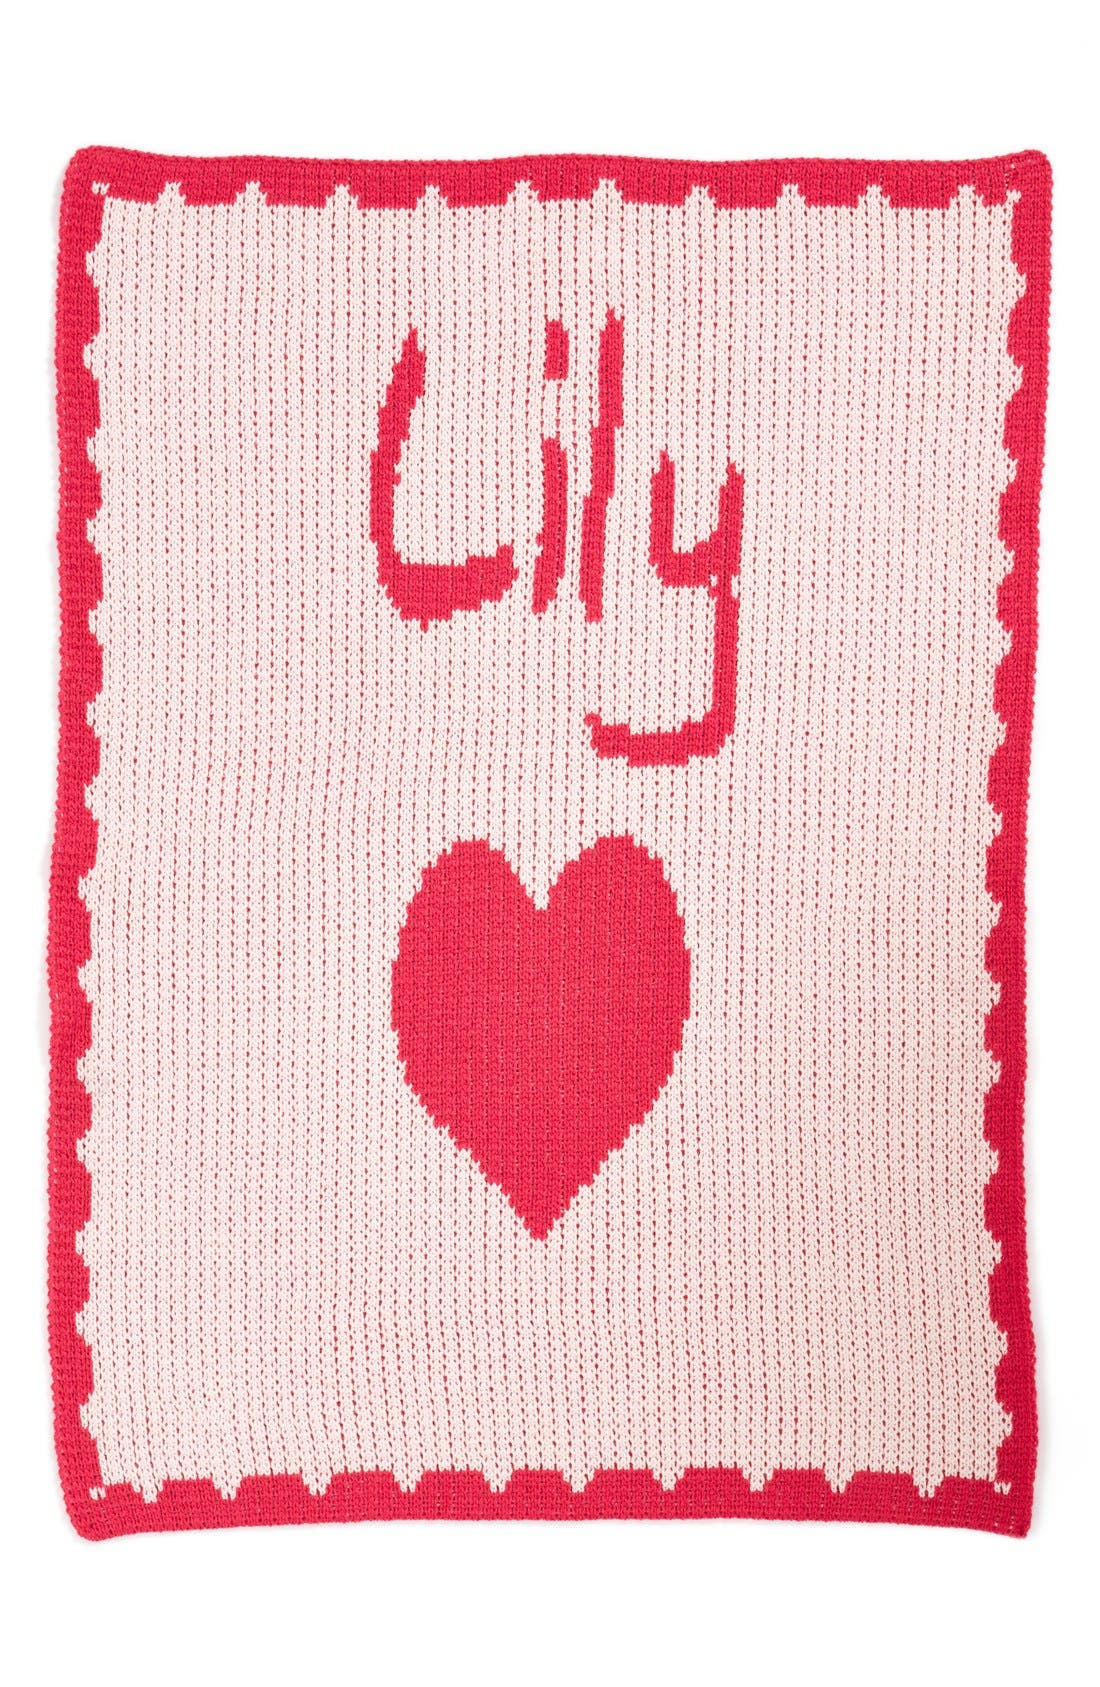 'Hearts - Small' Personalized Stroller Blanket,                             Main thumbnail 1, color,                             Pale Pink/ Fuchsia